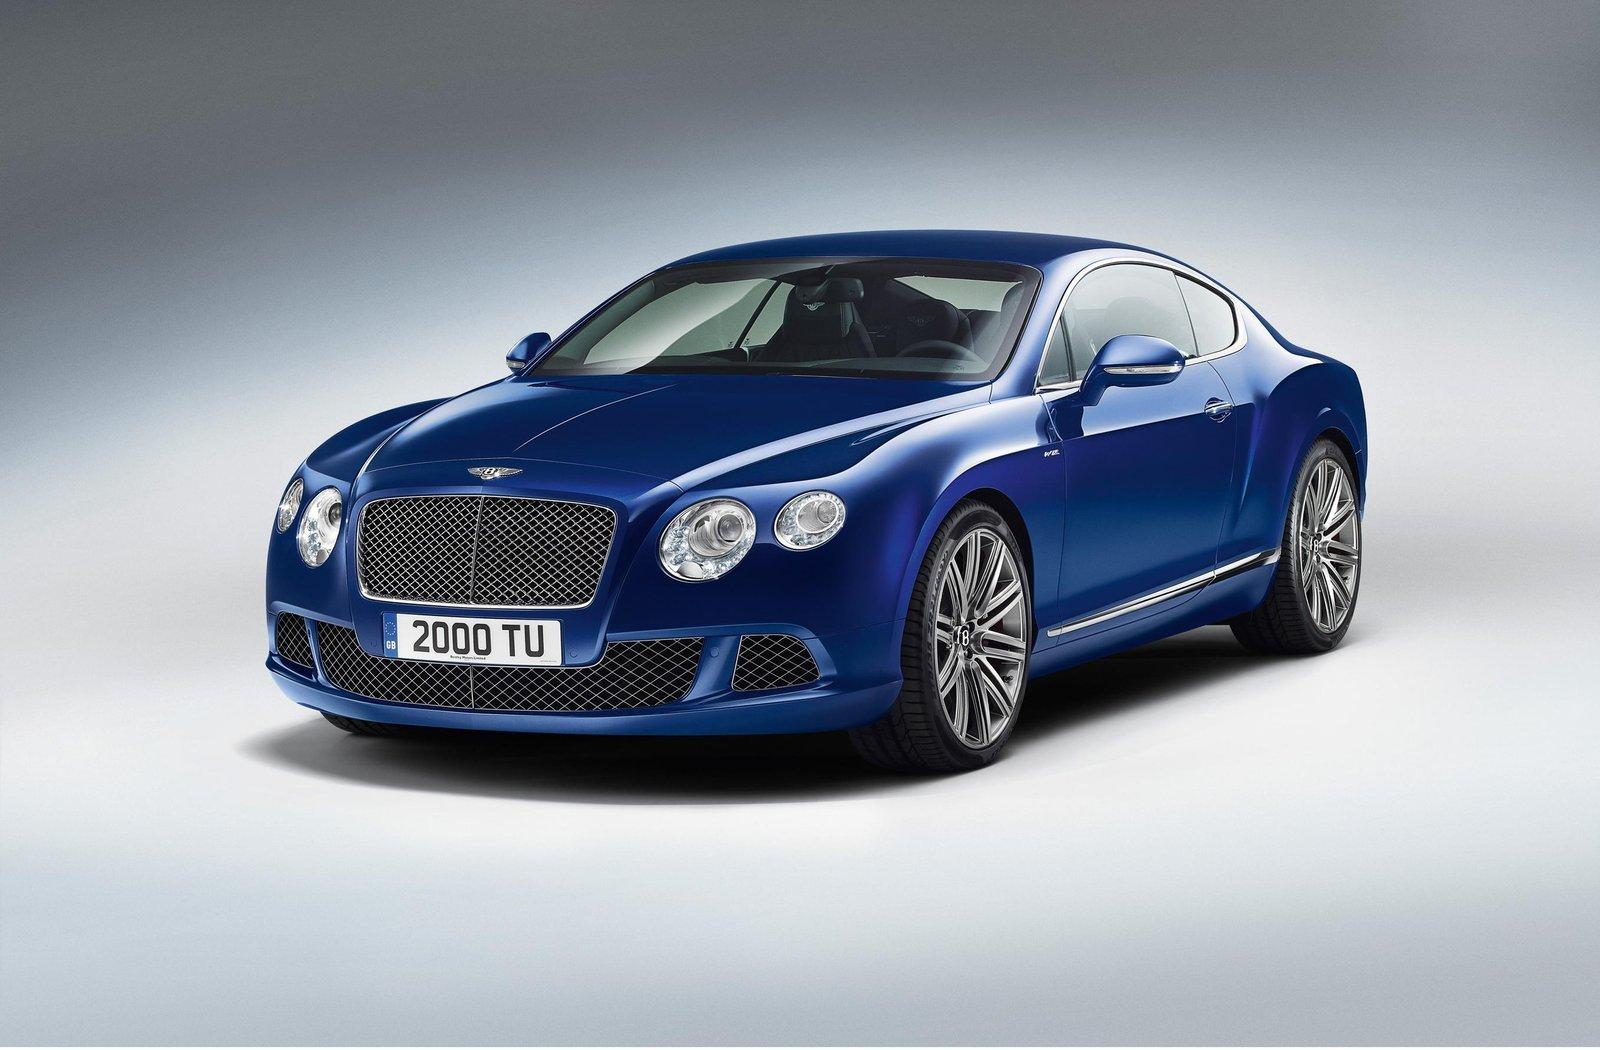 New-Bentley-Continental-GT-Blue-wallpaper-wp427880